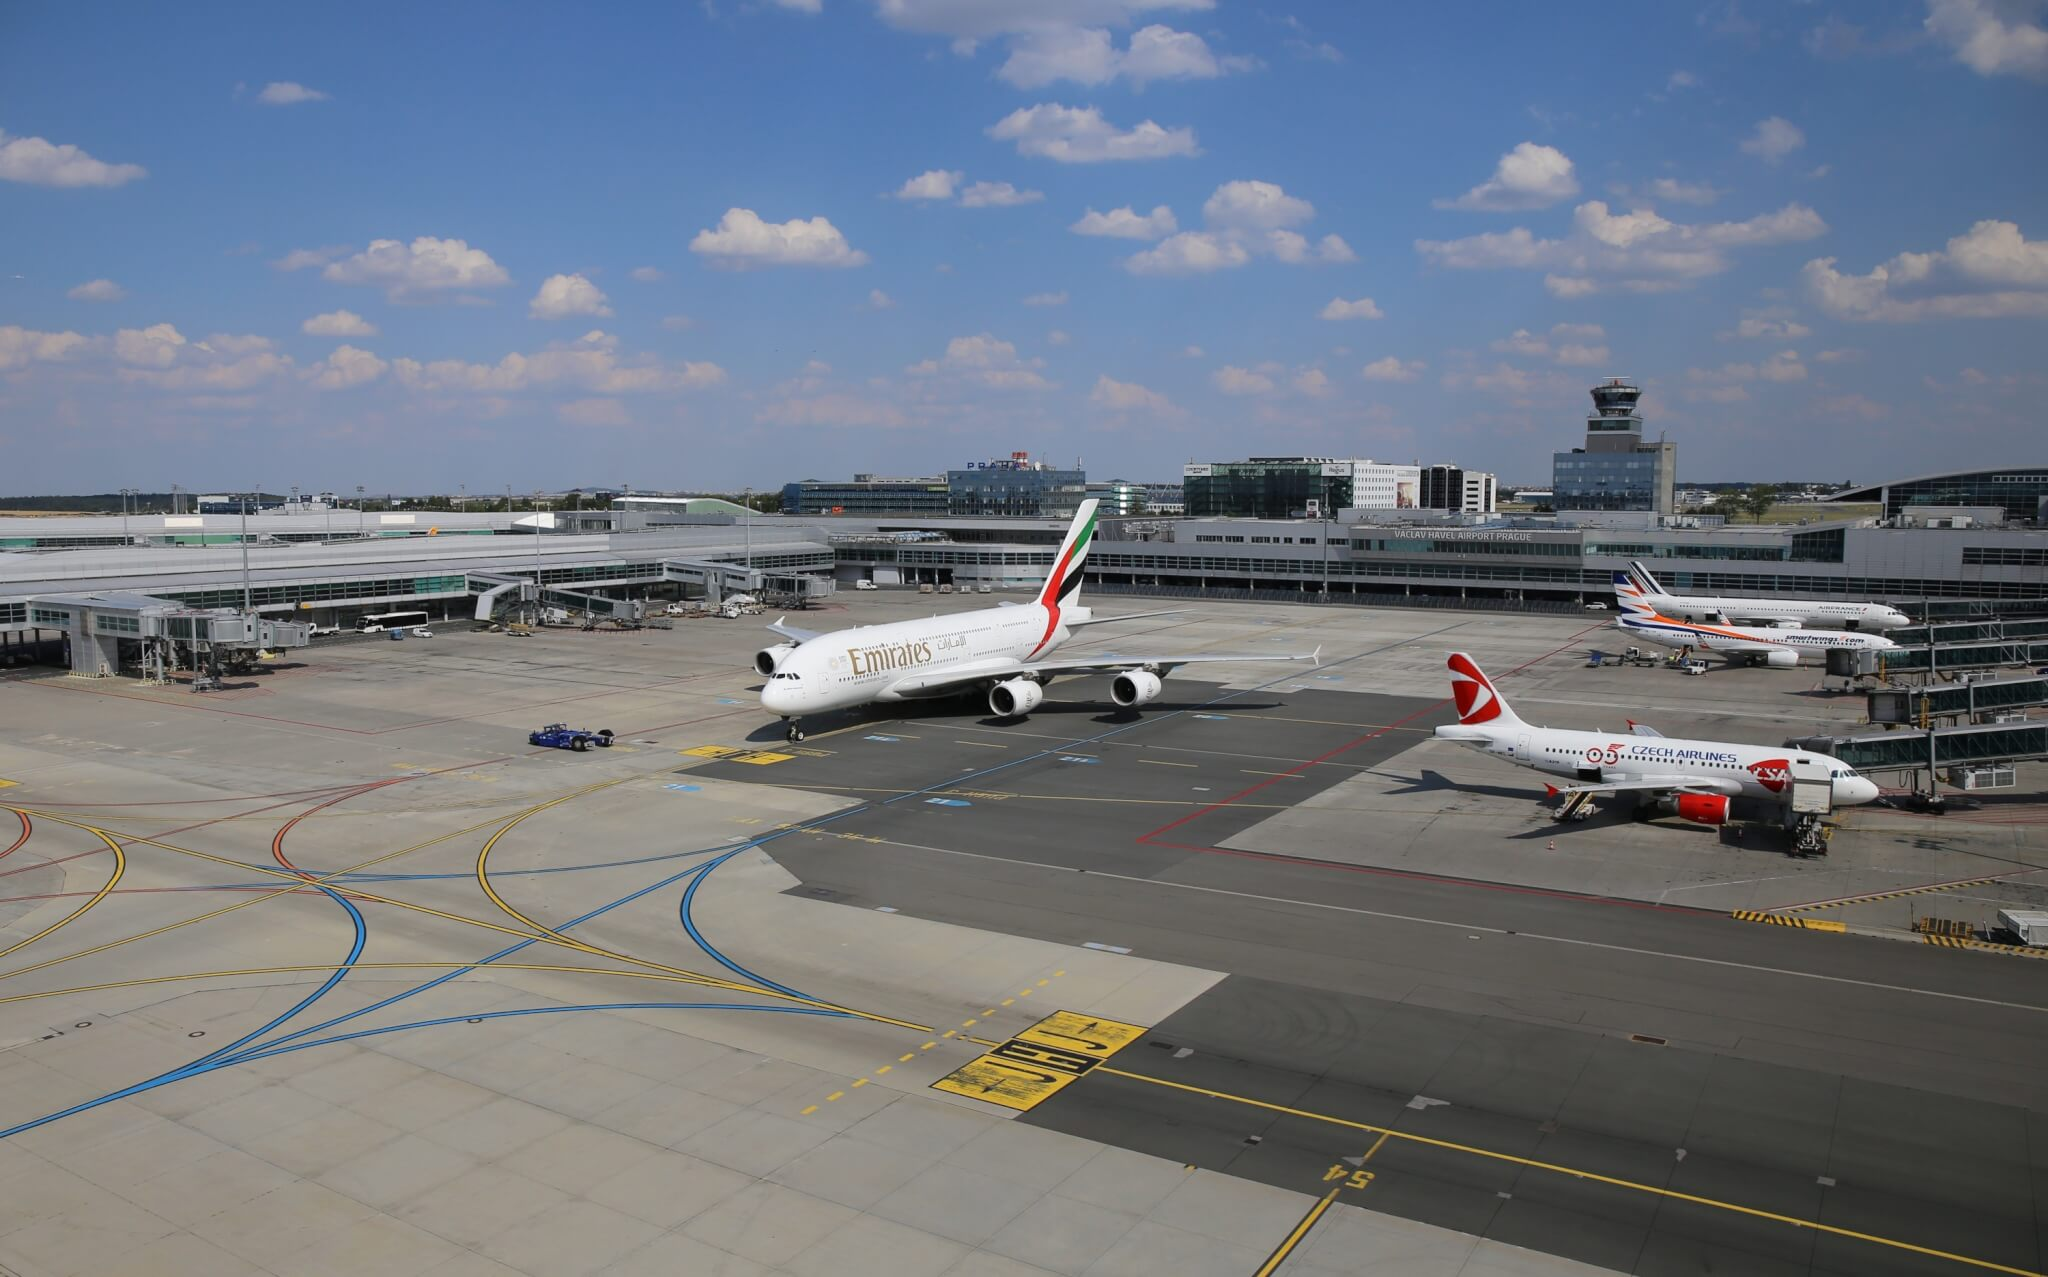 Václav Havel Airport Prague: 121 destinations in 46 countries this winter